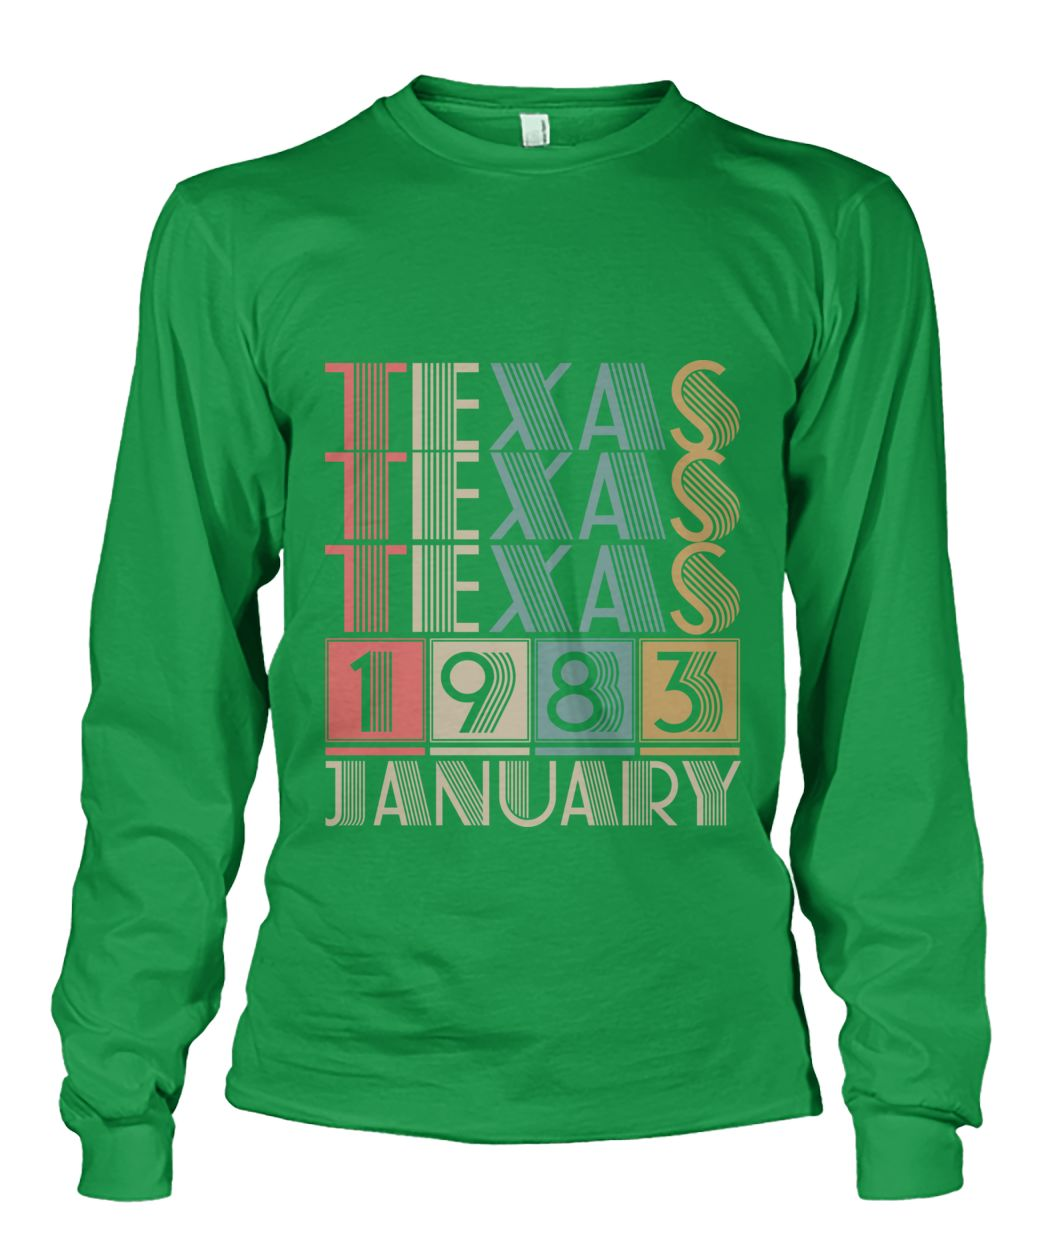 Born in Texas in January 1983 t shirt-Short Sleeves - TEEHOT.COM